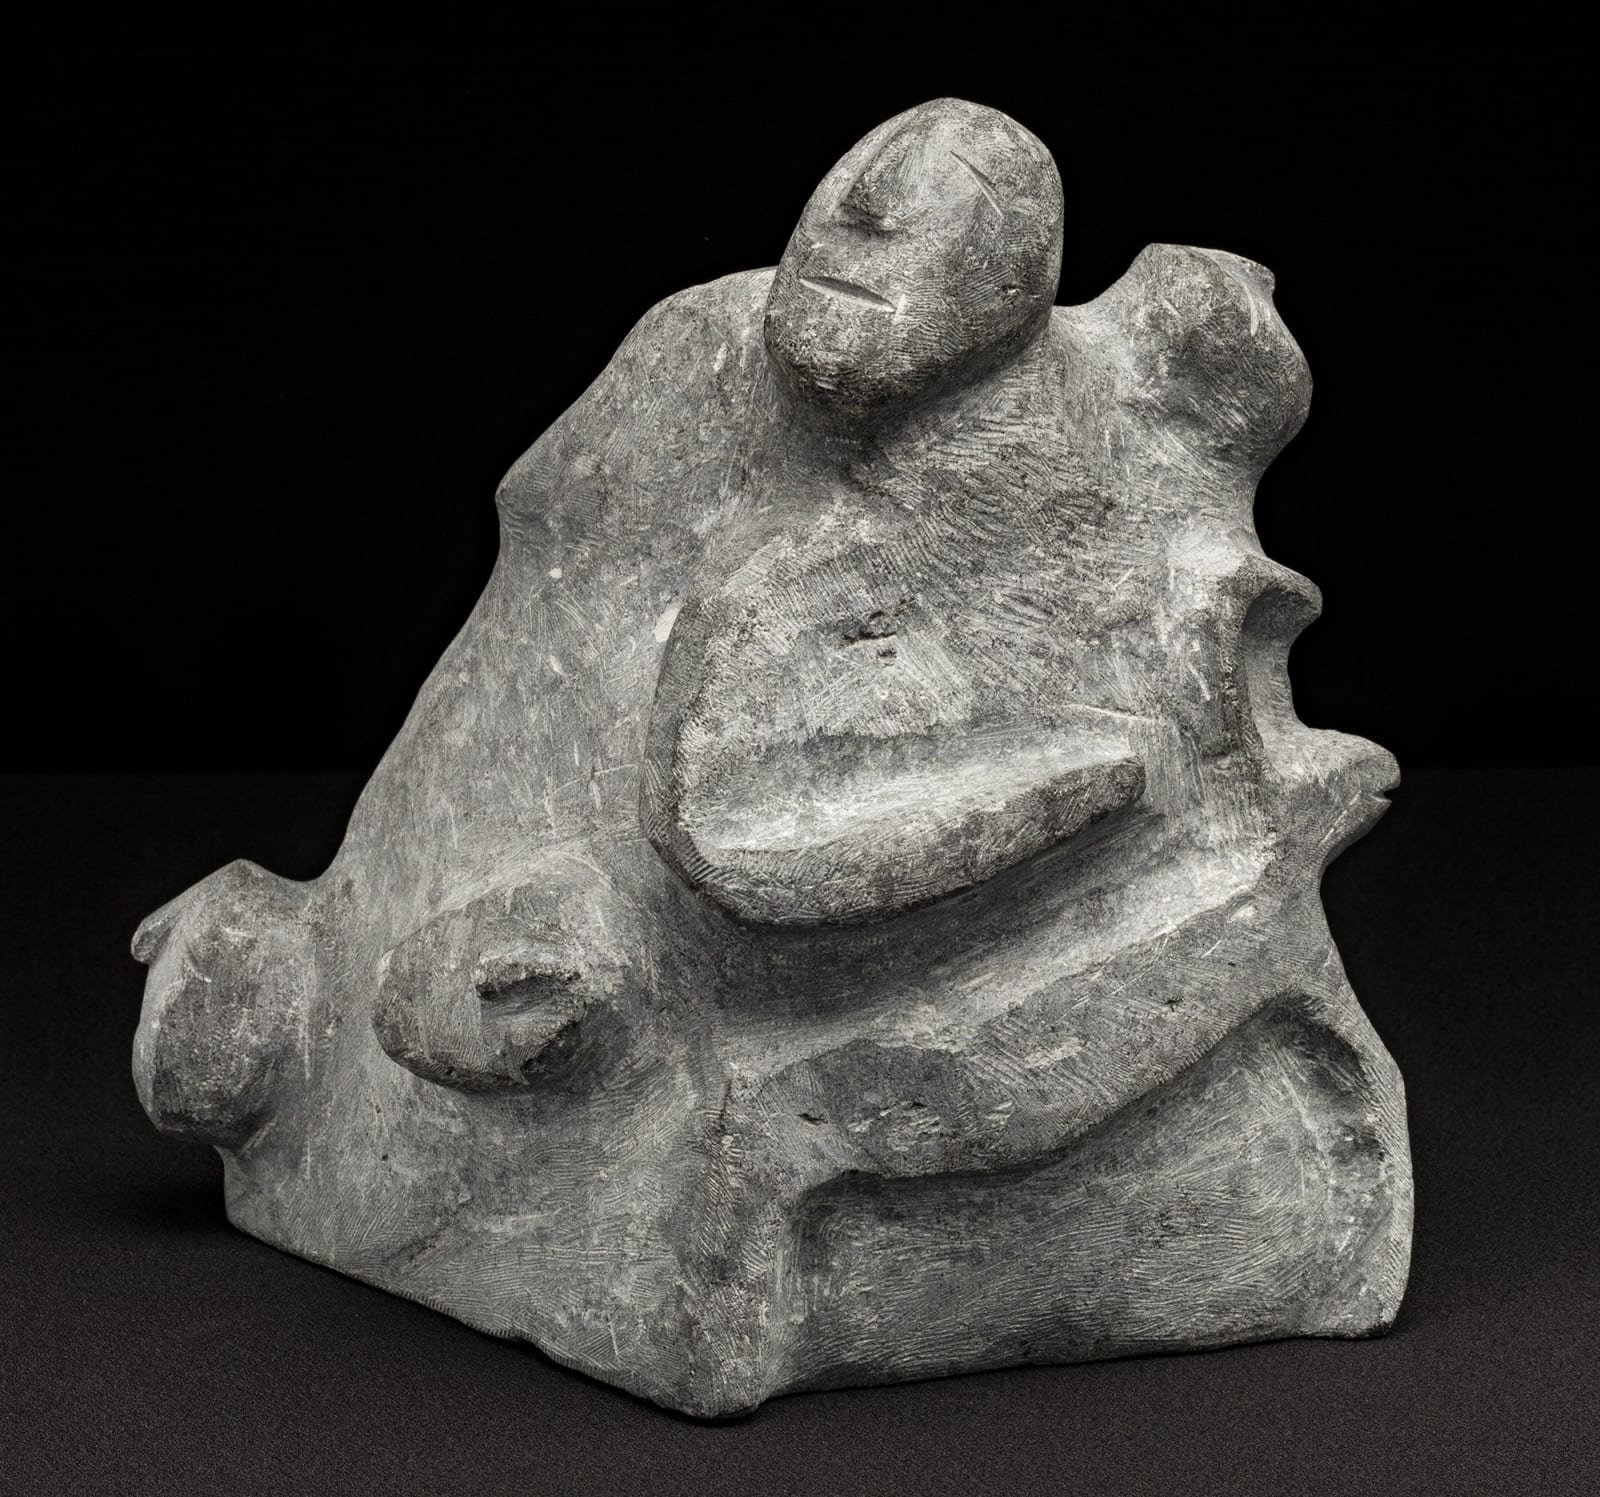 Lot 31 MARY AYAQ ANOWTALIK (1938-) ARVIAT (ESKIMO POINT) Composition with People and Caribou, 2004 stone, 9 x 7 x 8.5 in (22.9 x 17.8 x 21.6 cm) Estimate: $3,500⁠ — $5,000